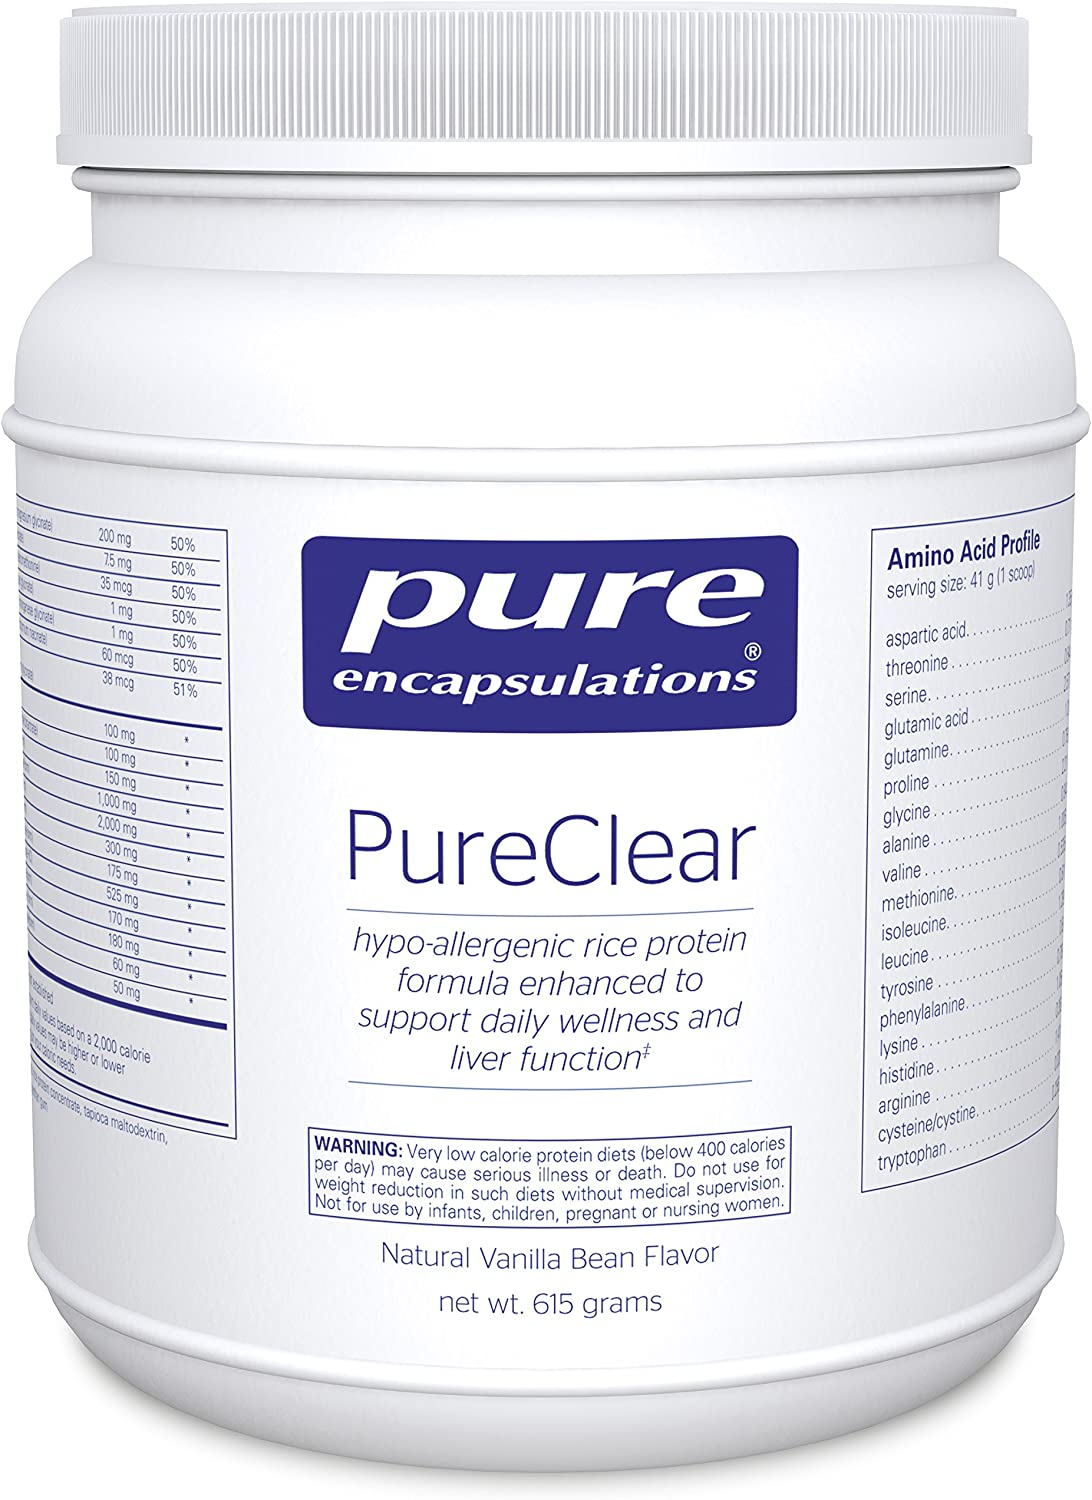 Pure Encapsulations – PureClear – Hypoallergenic Rice Protein to Support Daily Wellness and Healthy Liver Function* – Natural Vanilla Bean Flavor – 615 Grams